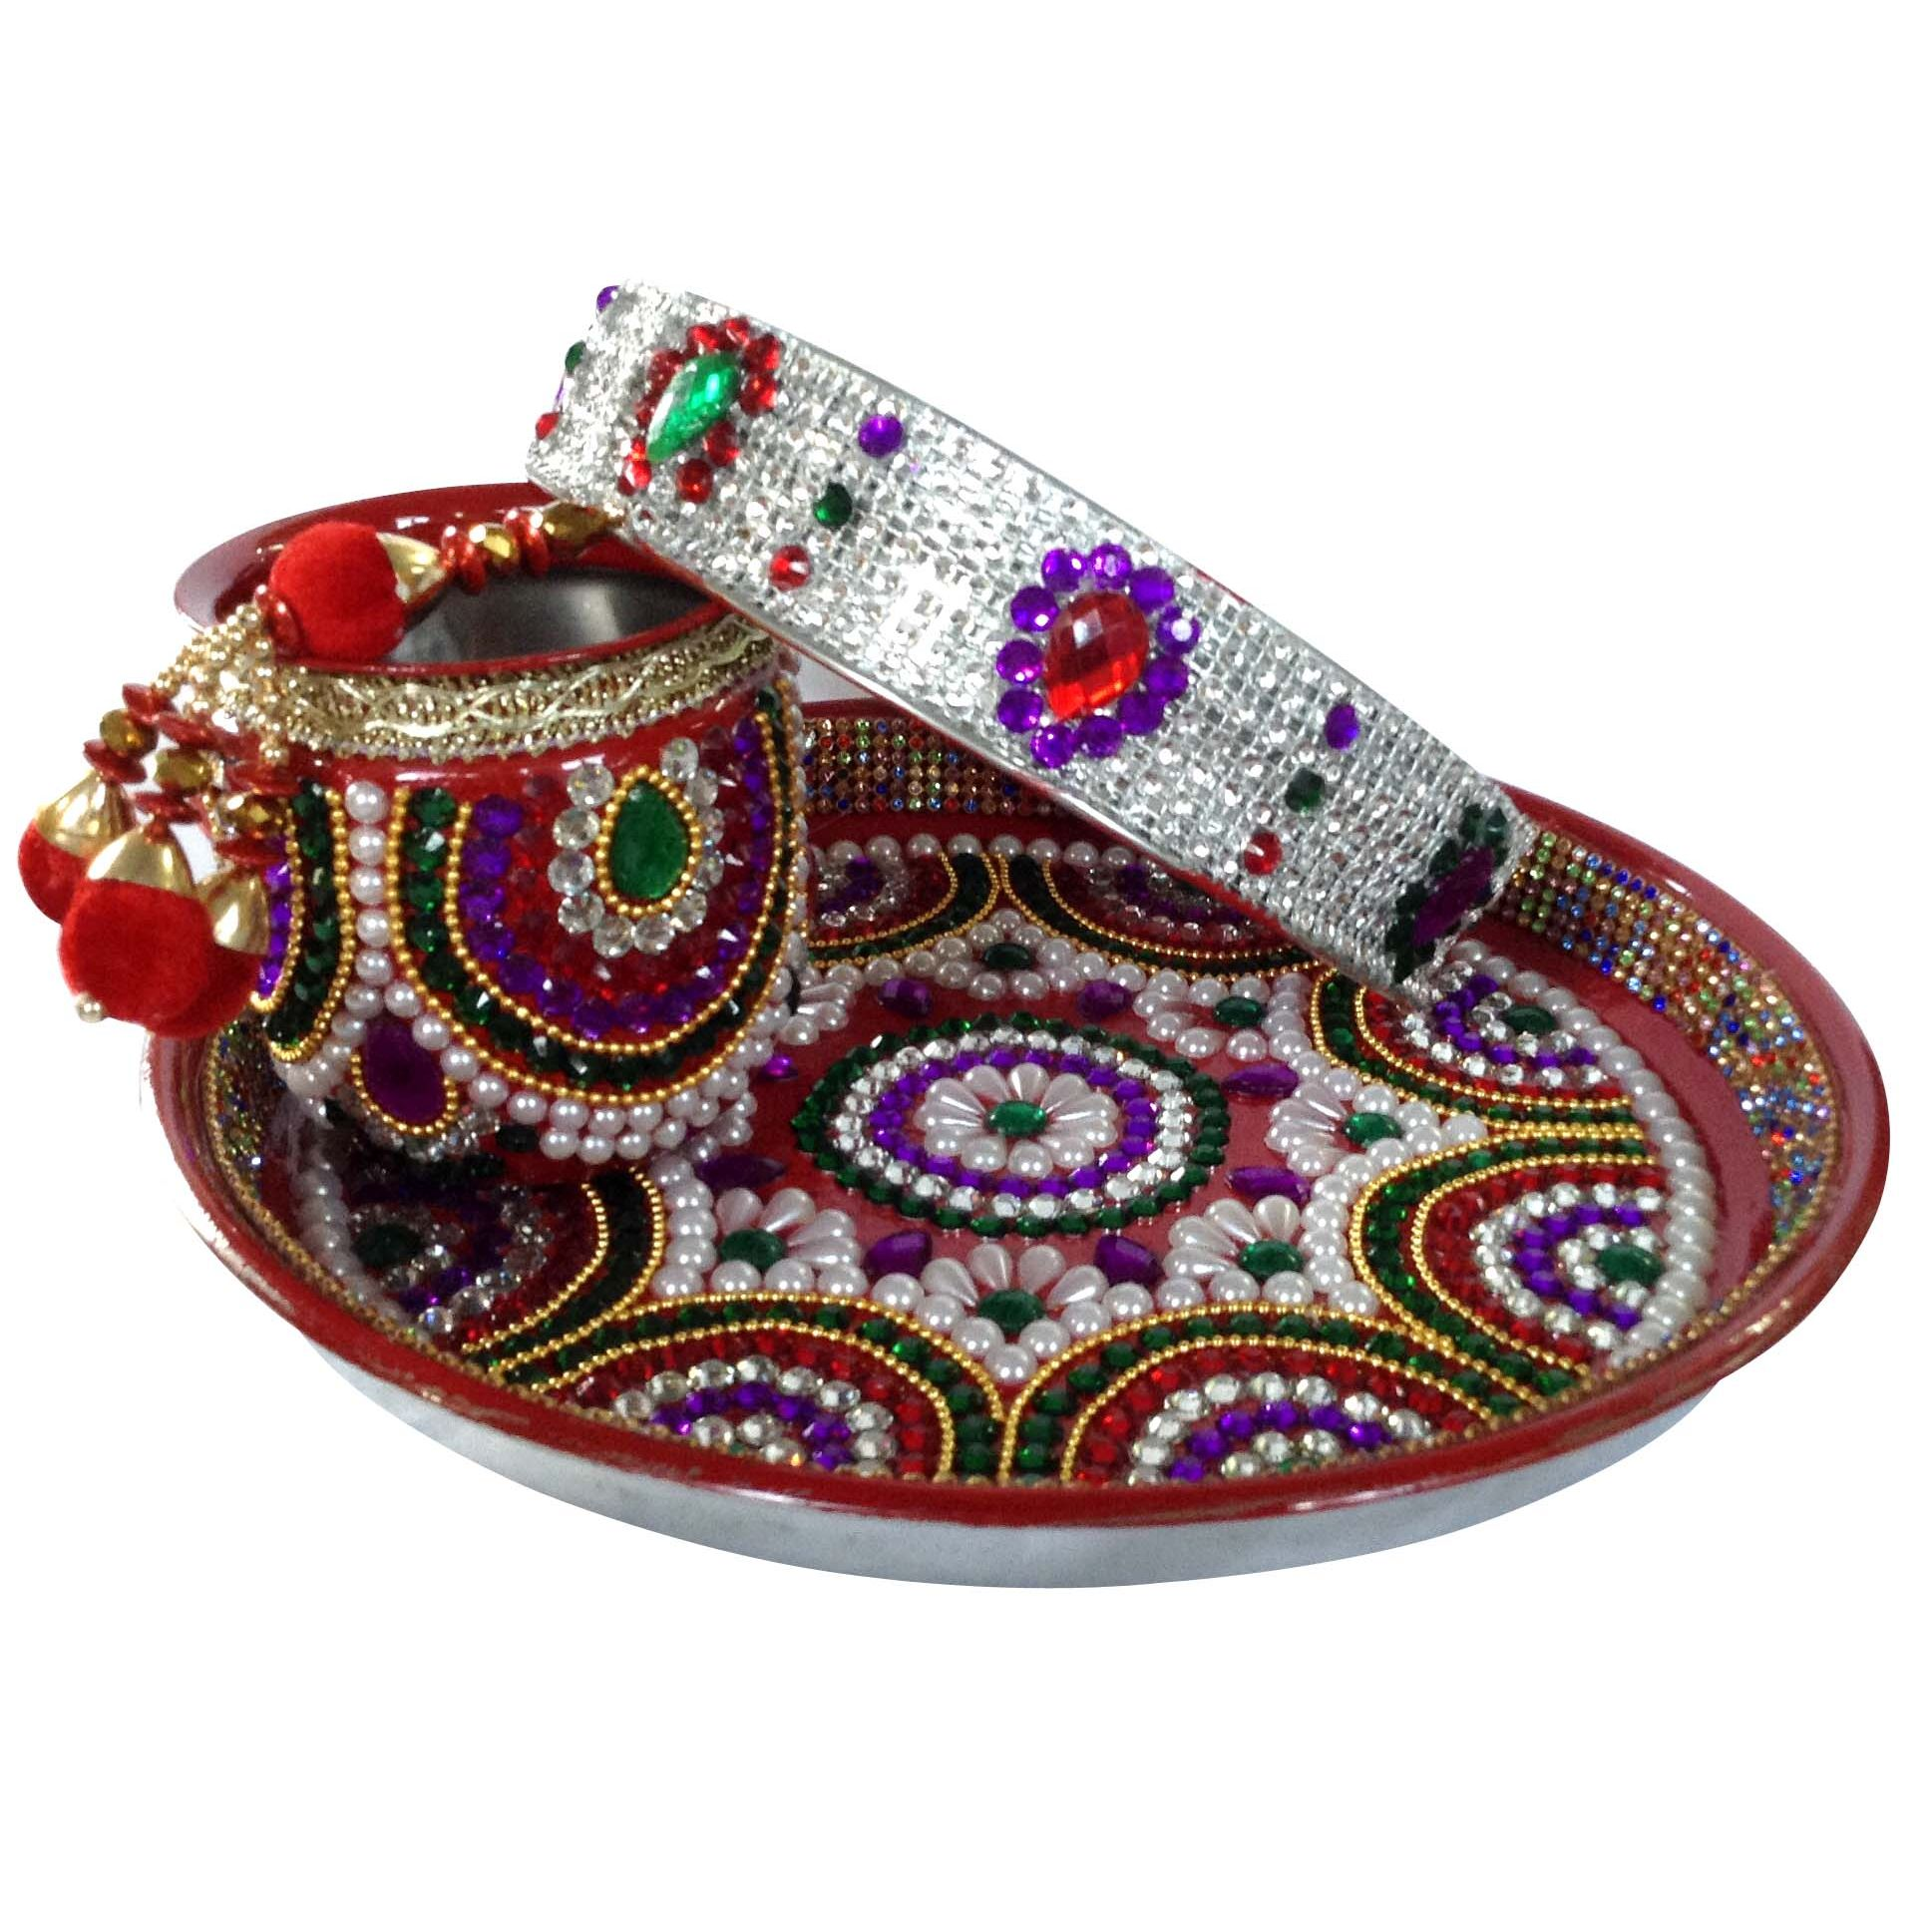 Beautiful Kundan Curved Karwa Chauth Puja Thali...  SHOP NOW : http://bit.ly/2hhjajL  #makeup #nationspeaks #be-fashionable #trendy #ropo-love #ootd #indian #youtuber #fashionblogger #newdp #blogger #model #fashion #soroposo #roposo #love #followme #beauty #styles #pujathali #karwachauth  #karwachauththali #fleaffair